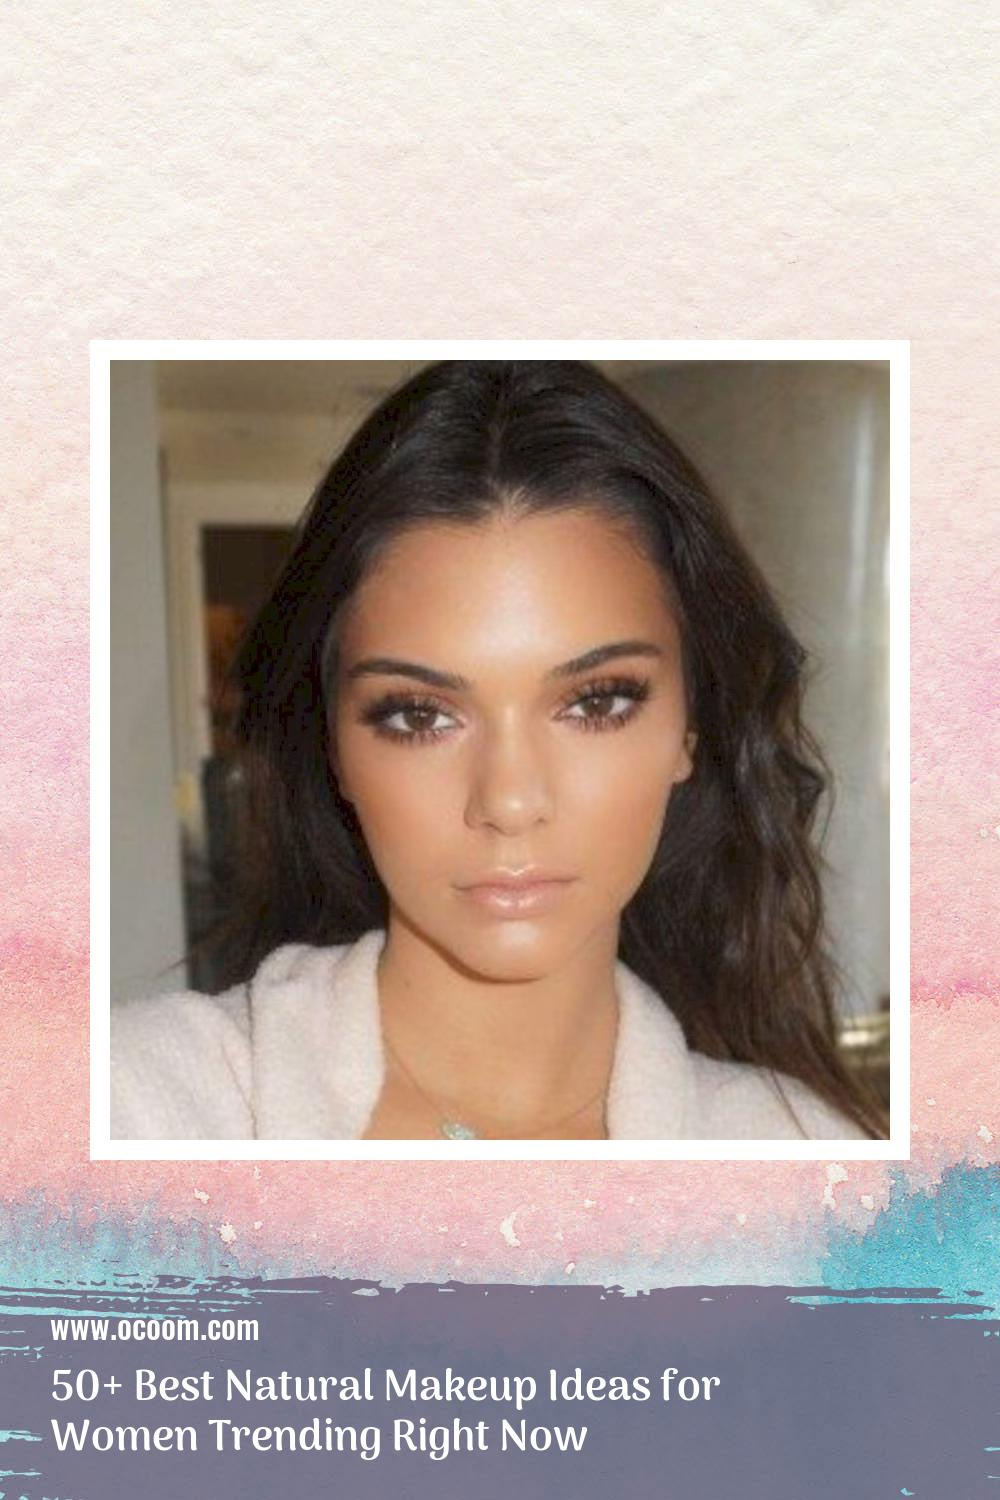 50+ Best Natural Makeup Ideas for Women Trending Right Now 40